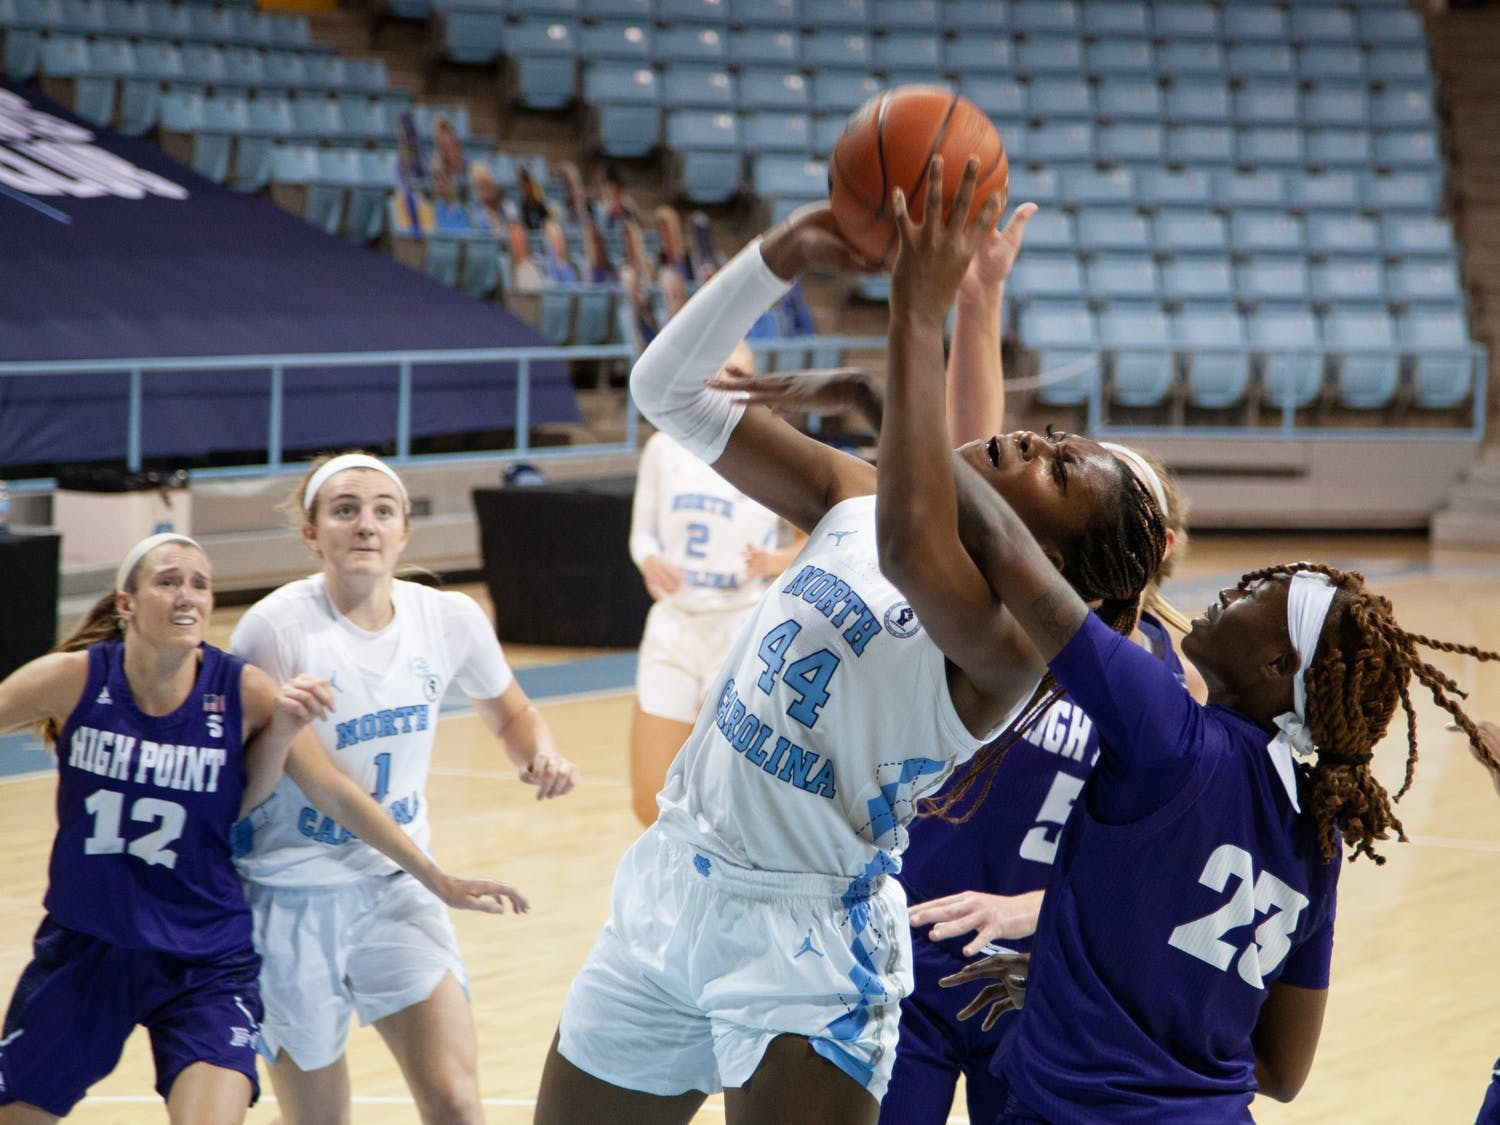 UNC senior center Janelle Bailey (44) takes a shot during the game against High Point Sunday, Nov. 29, 2020 in Carmichael Arena.